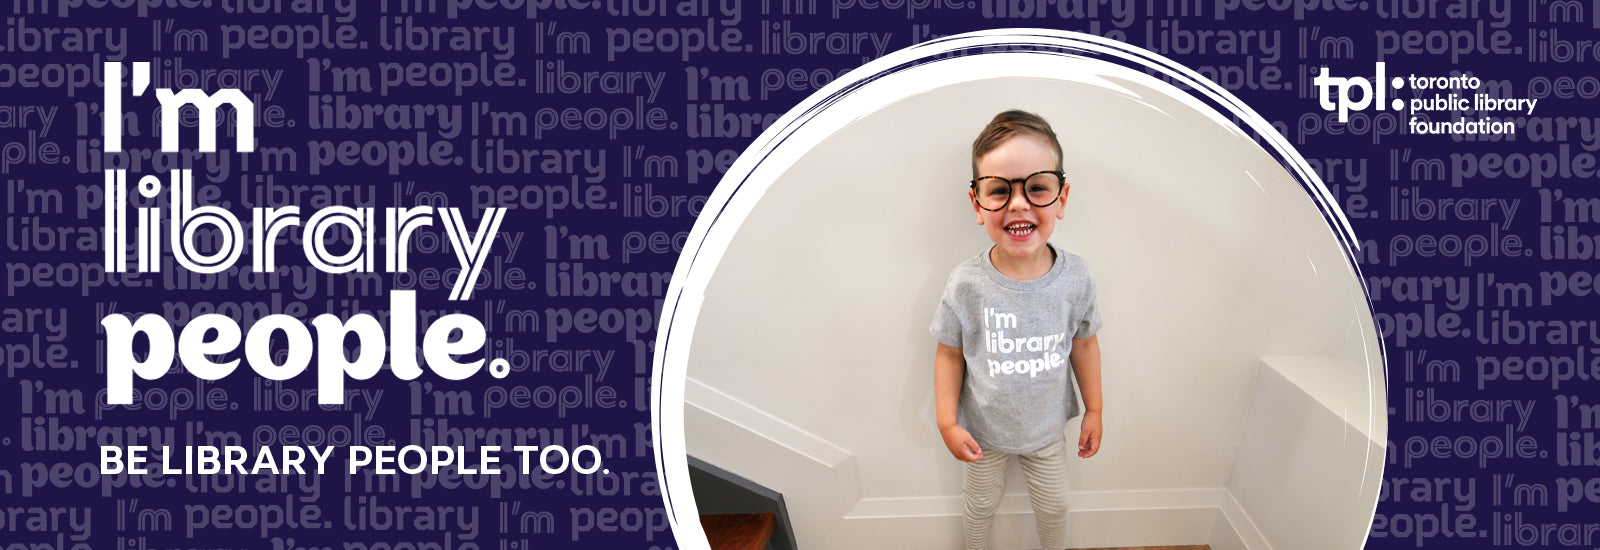 I'm Library People Merchandise